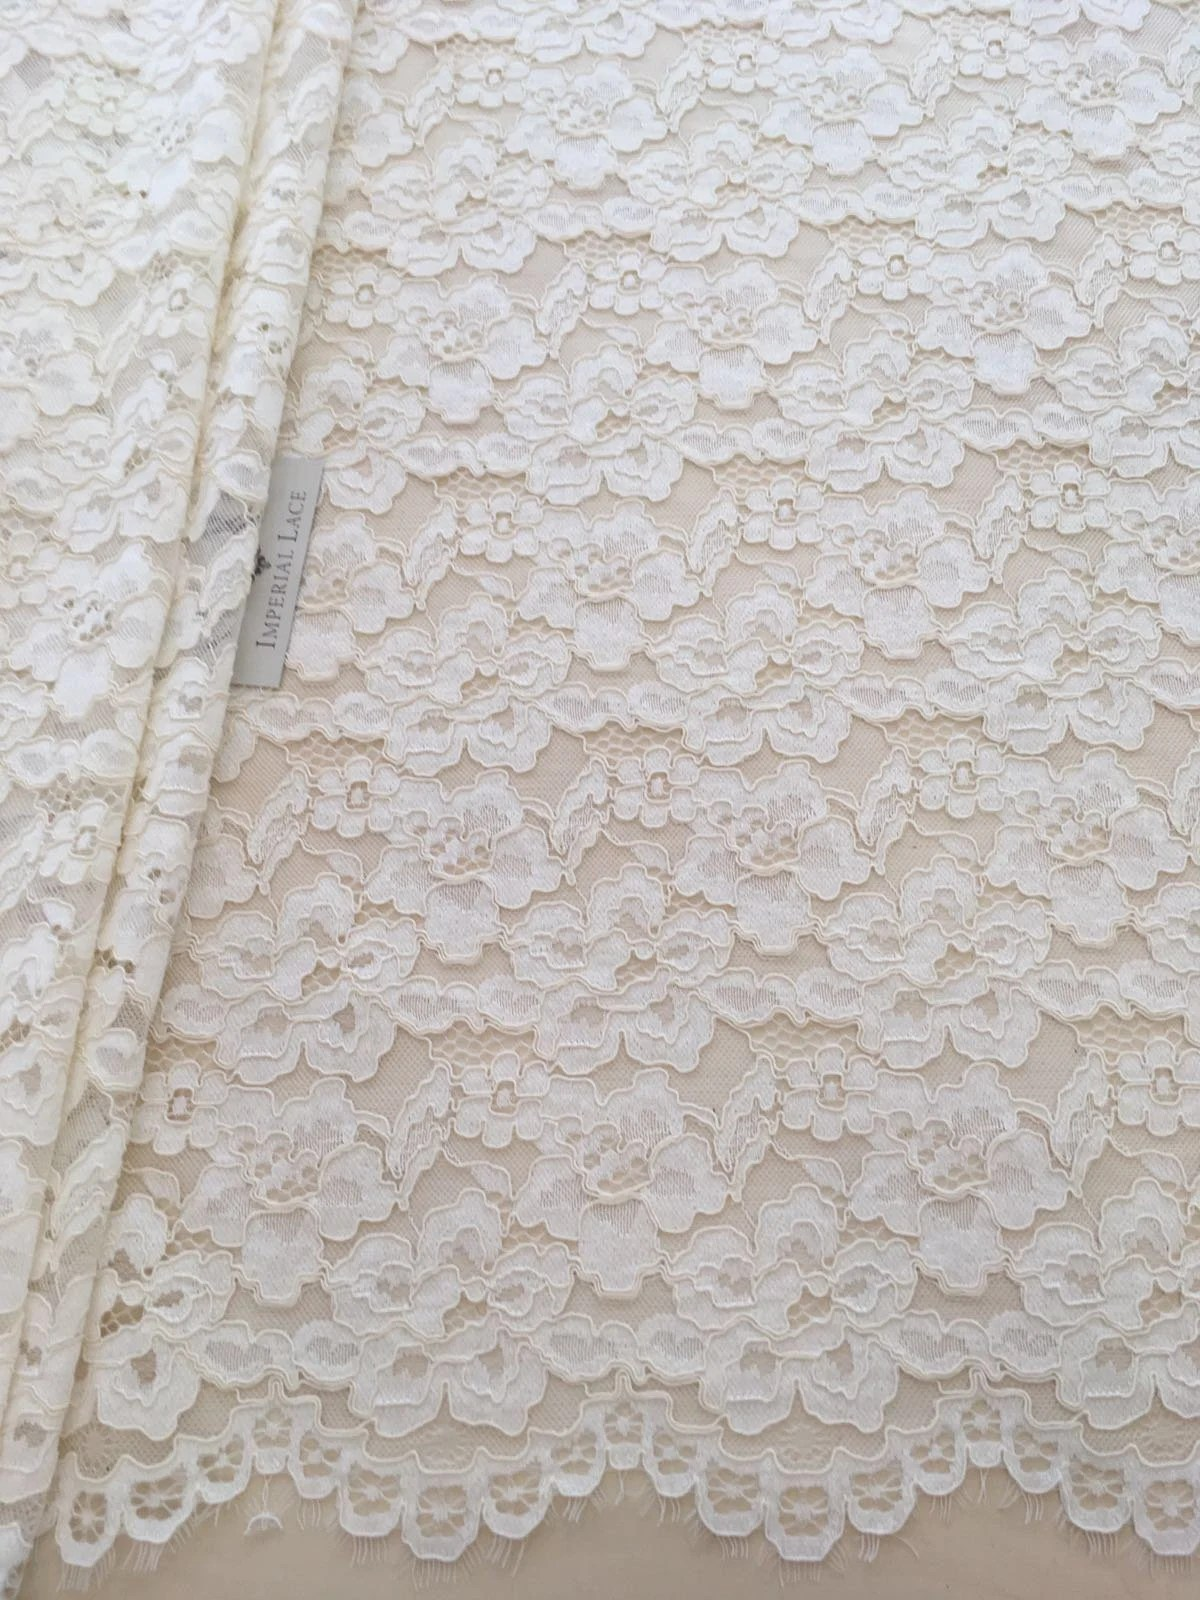 Stoff Spitze Ecru Lace Fabric French Lace Chantilly Lace Spitze Stoff Ivory White Wedding Lace White Lace Soft Chantilly Lace B00211